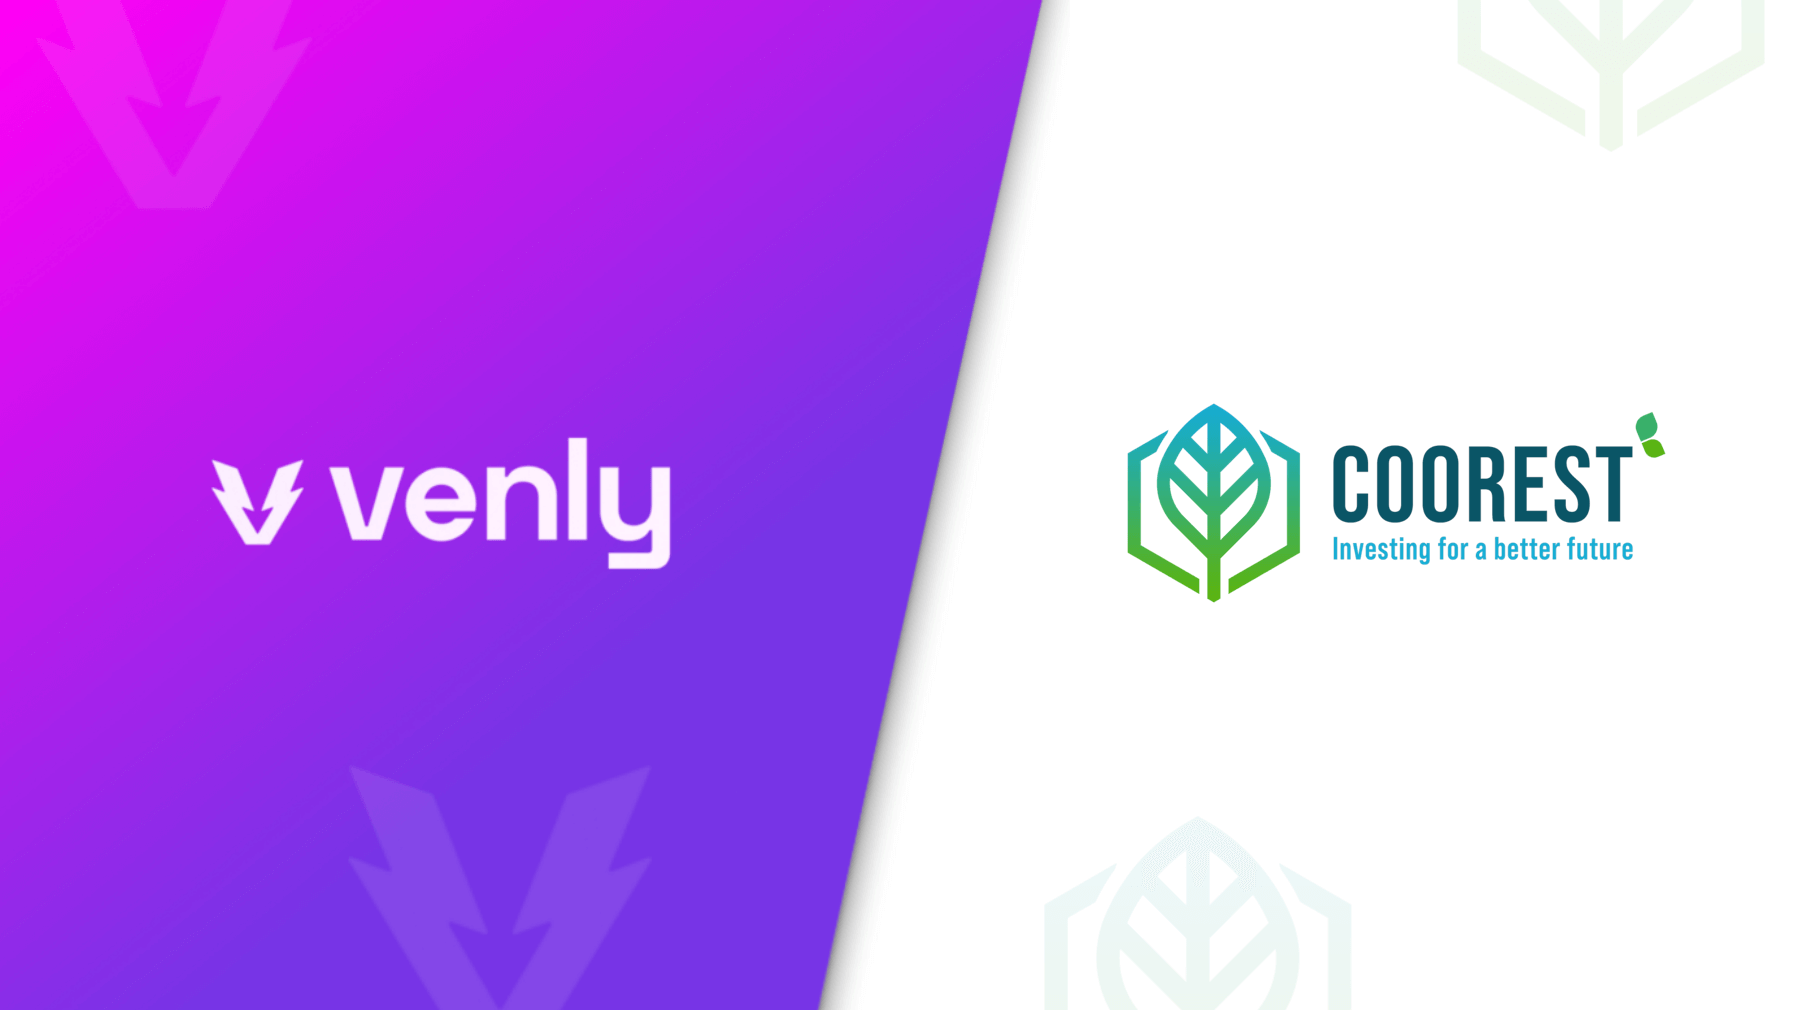 Coorest integrates the Venly tech with the Venly minting APIs.